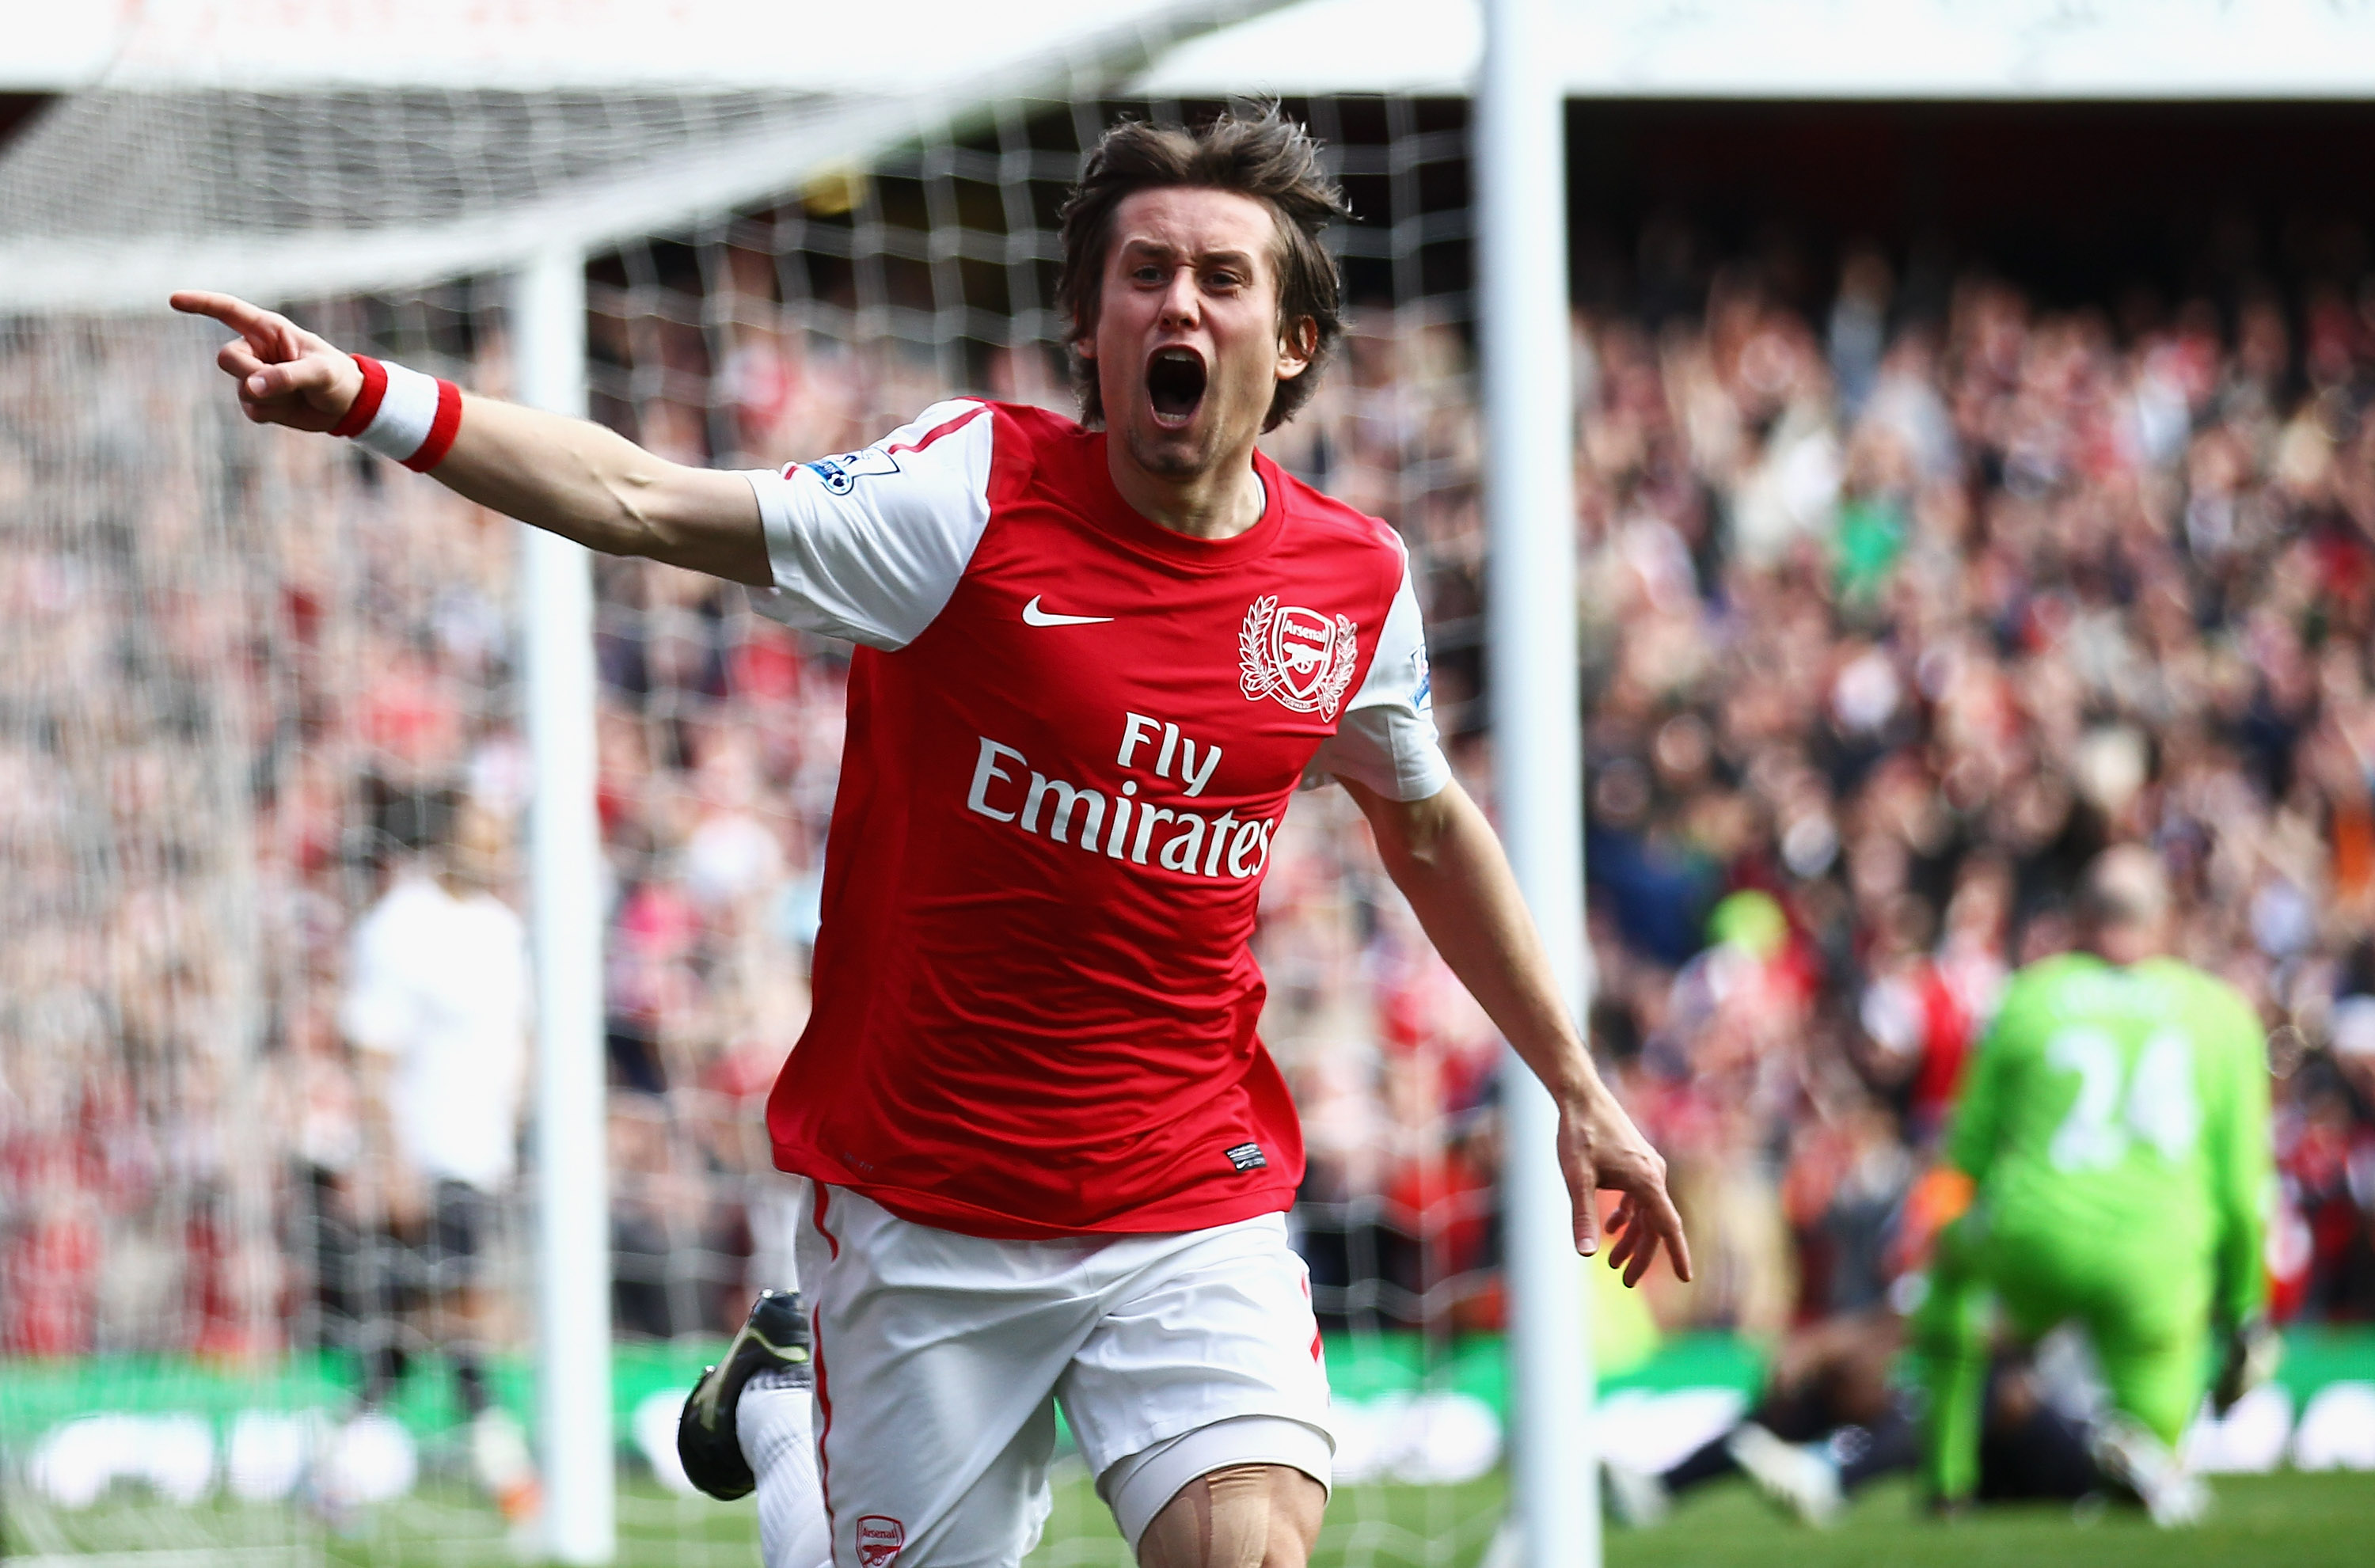 Rosický has played 246 times for Arsenal since joining from Borussia Dortmund in 2006